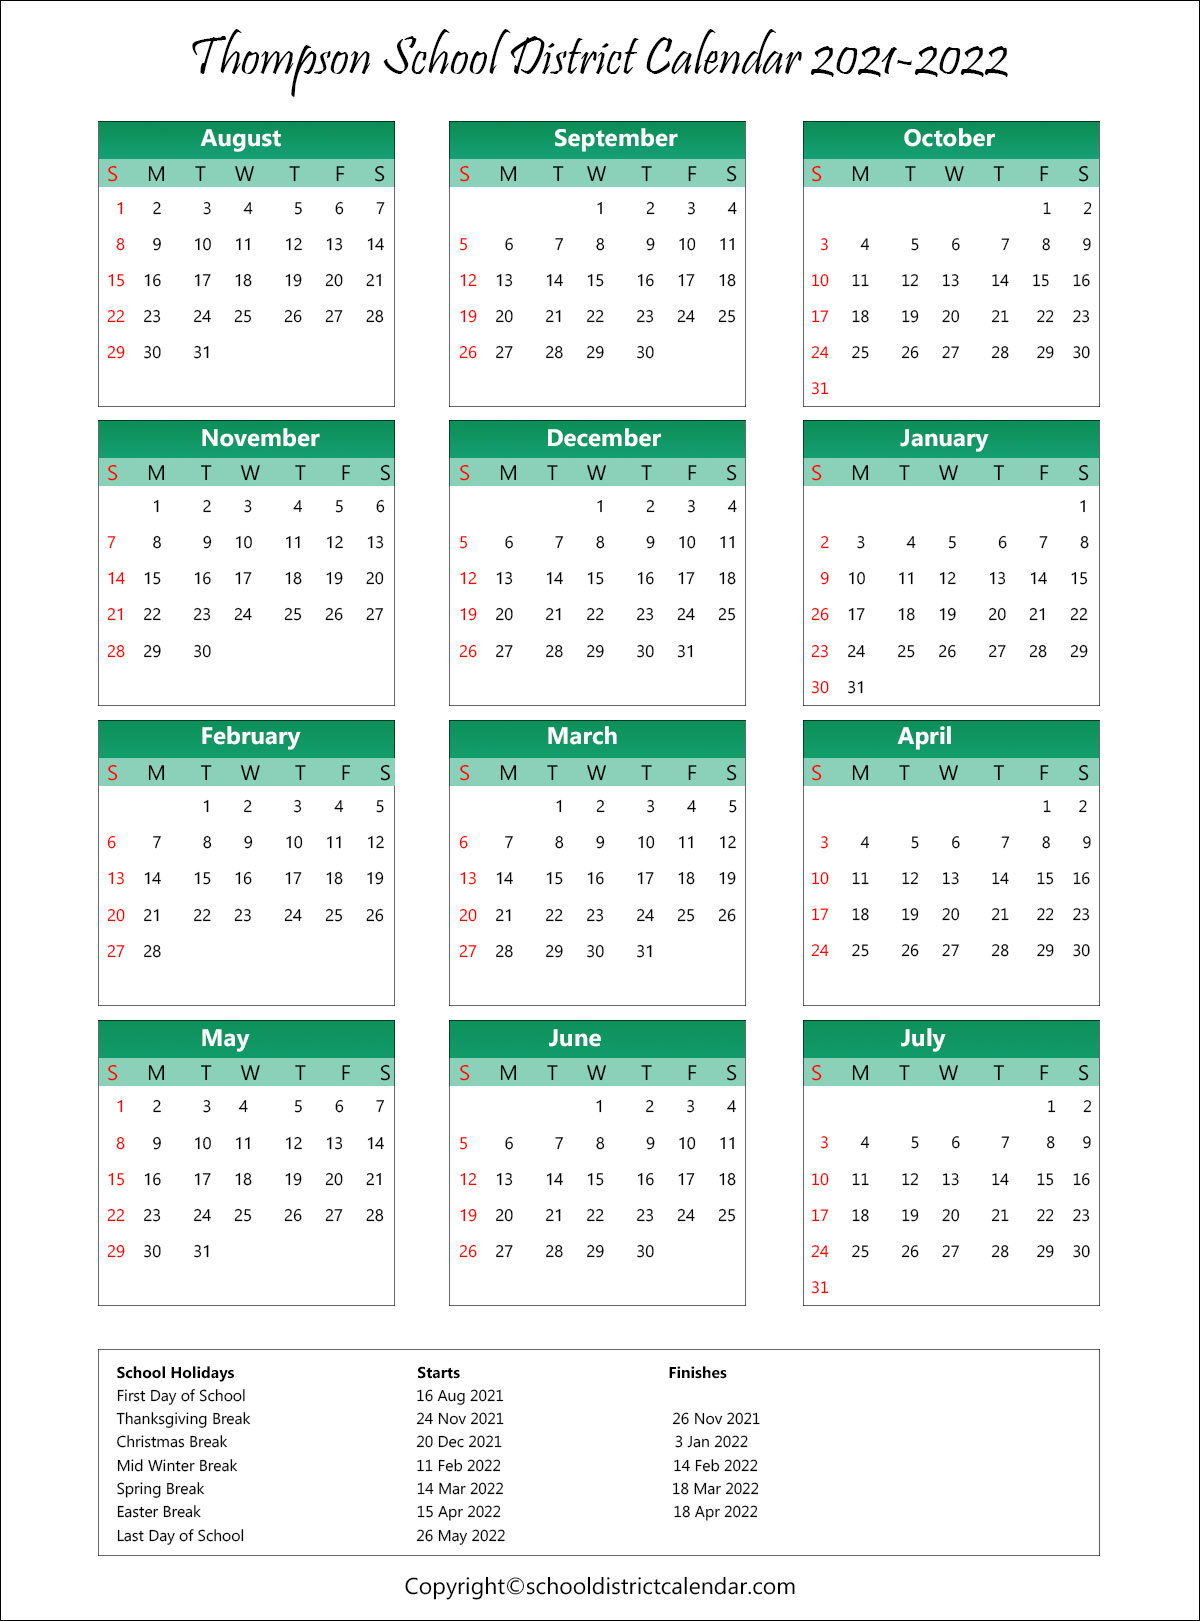 Olathe School District Calendar 2021-22 Thompson School District Calendar Holidays 2021 2022